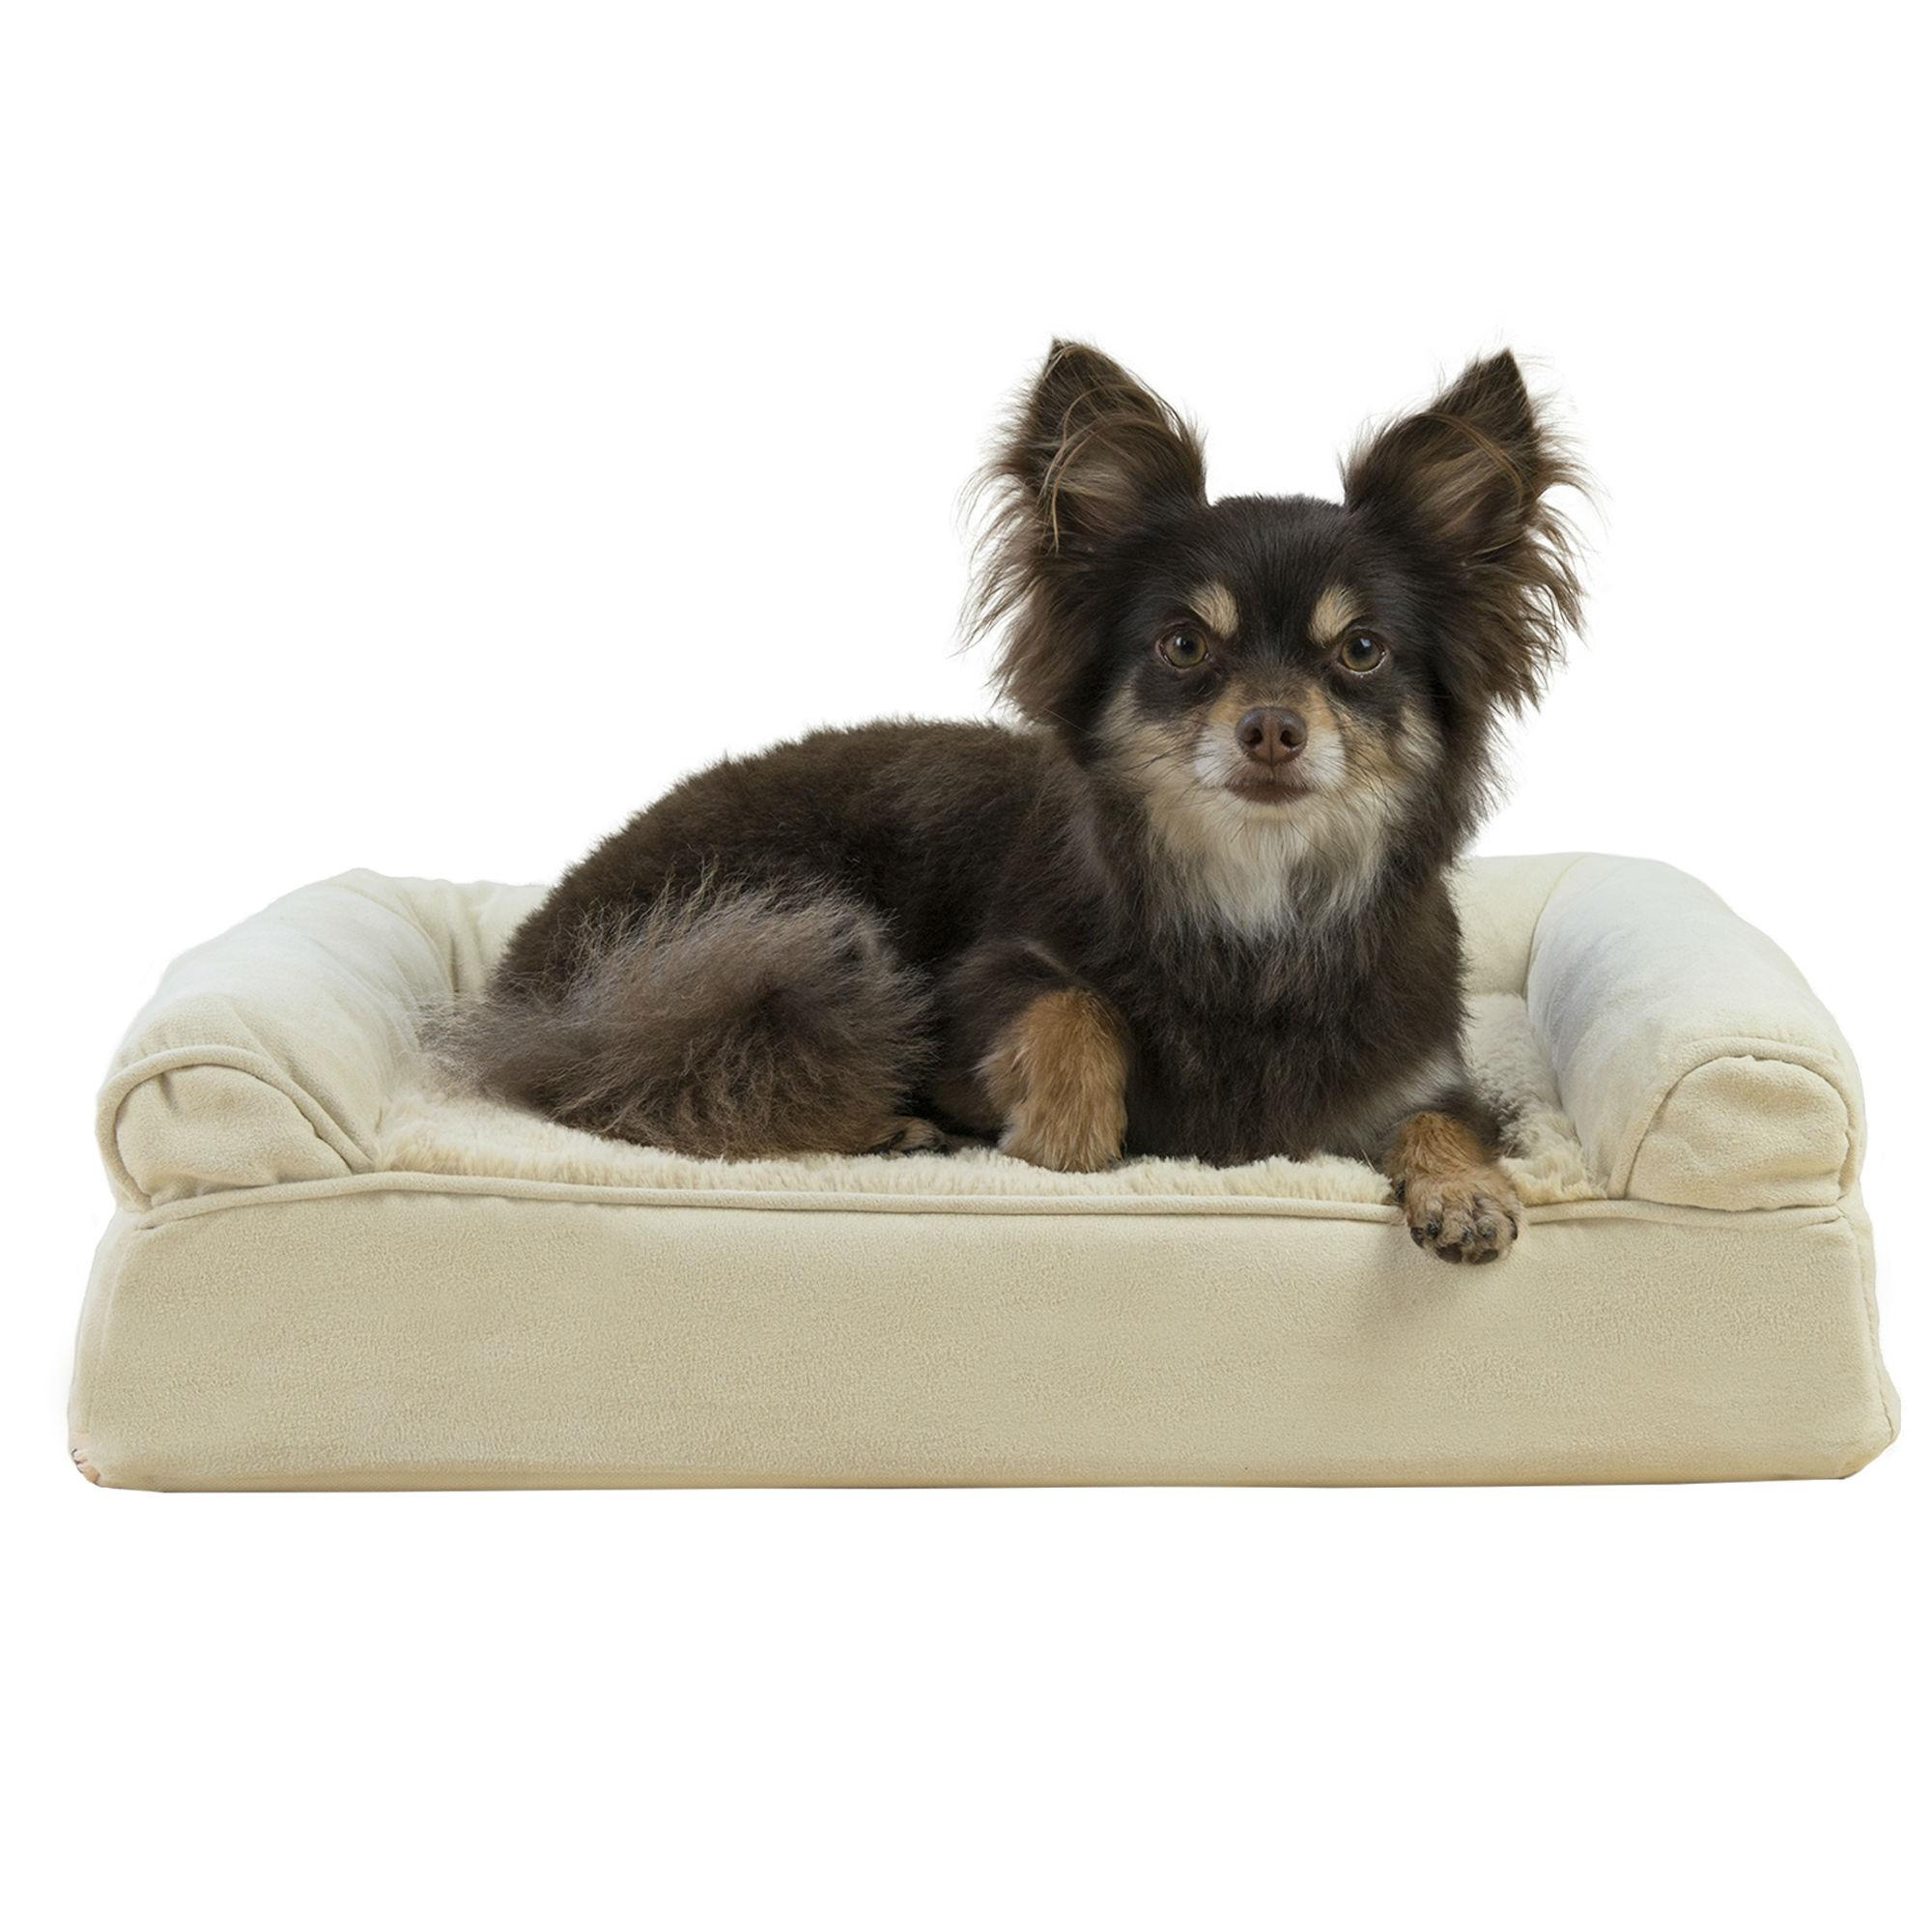 Furhaven Plush Suede Orthopedic Sofa Pet Bed Clay